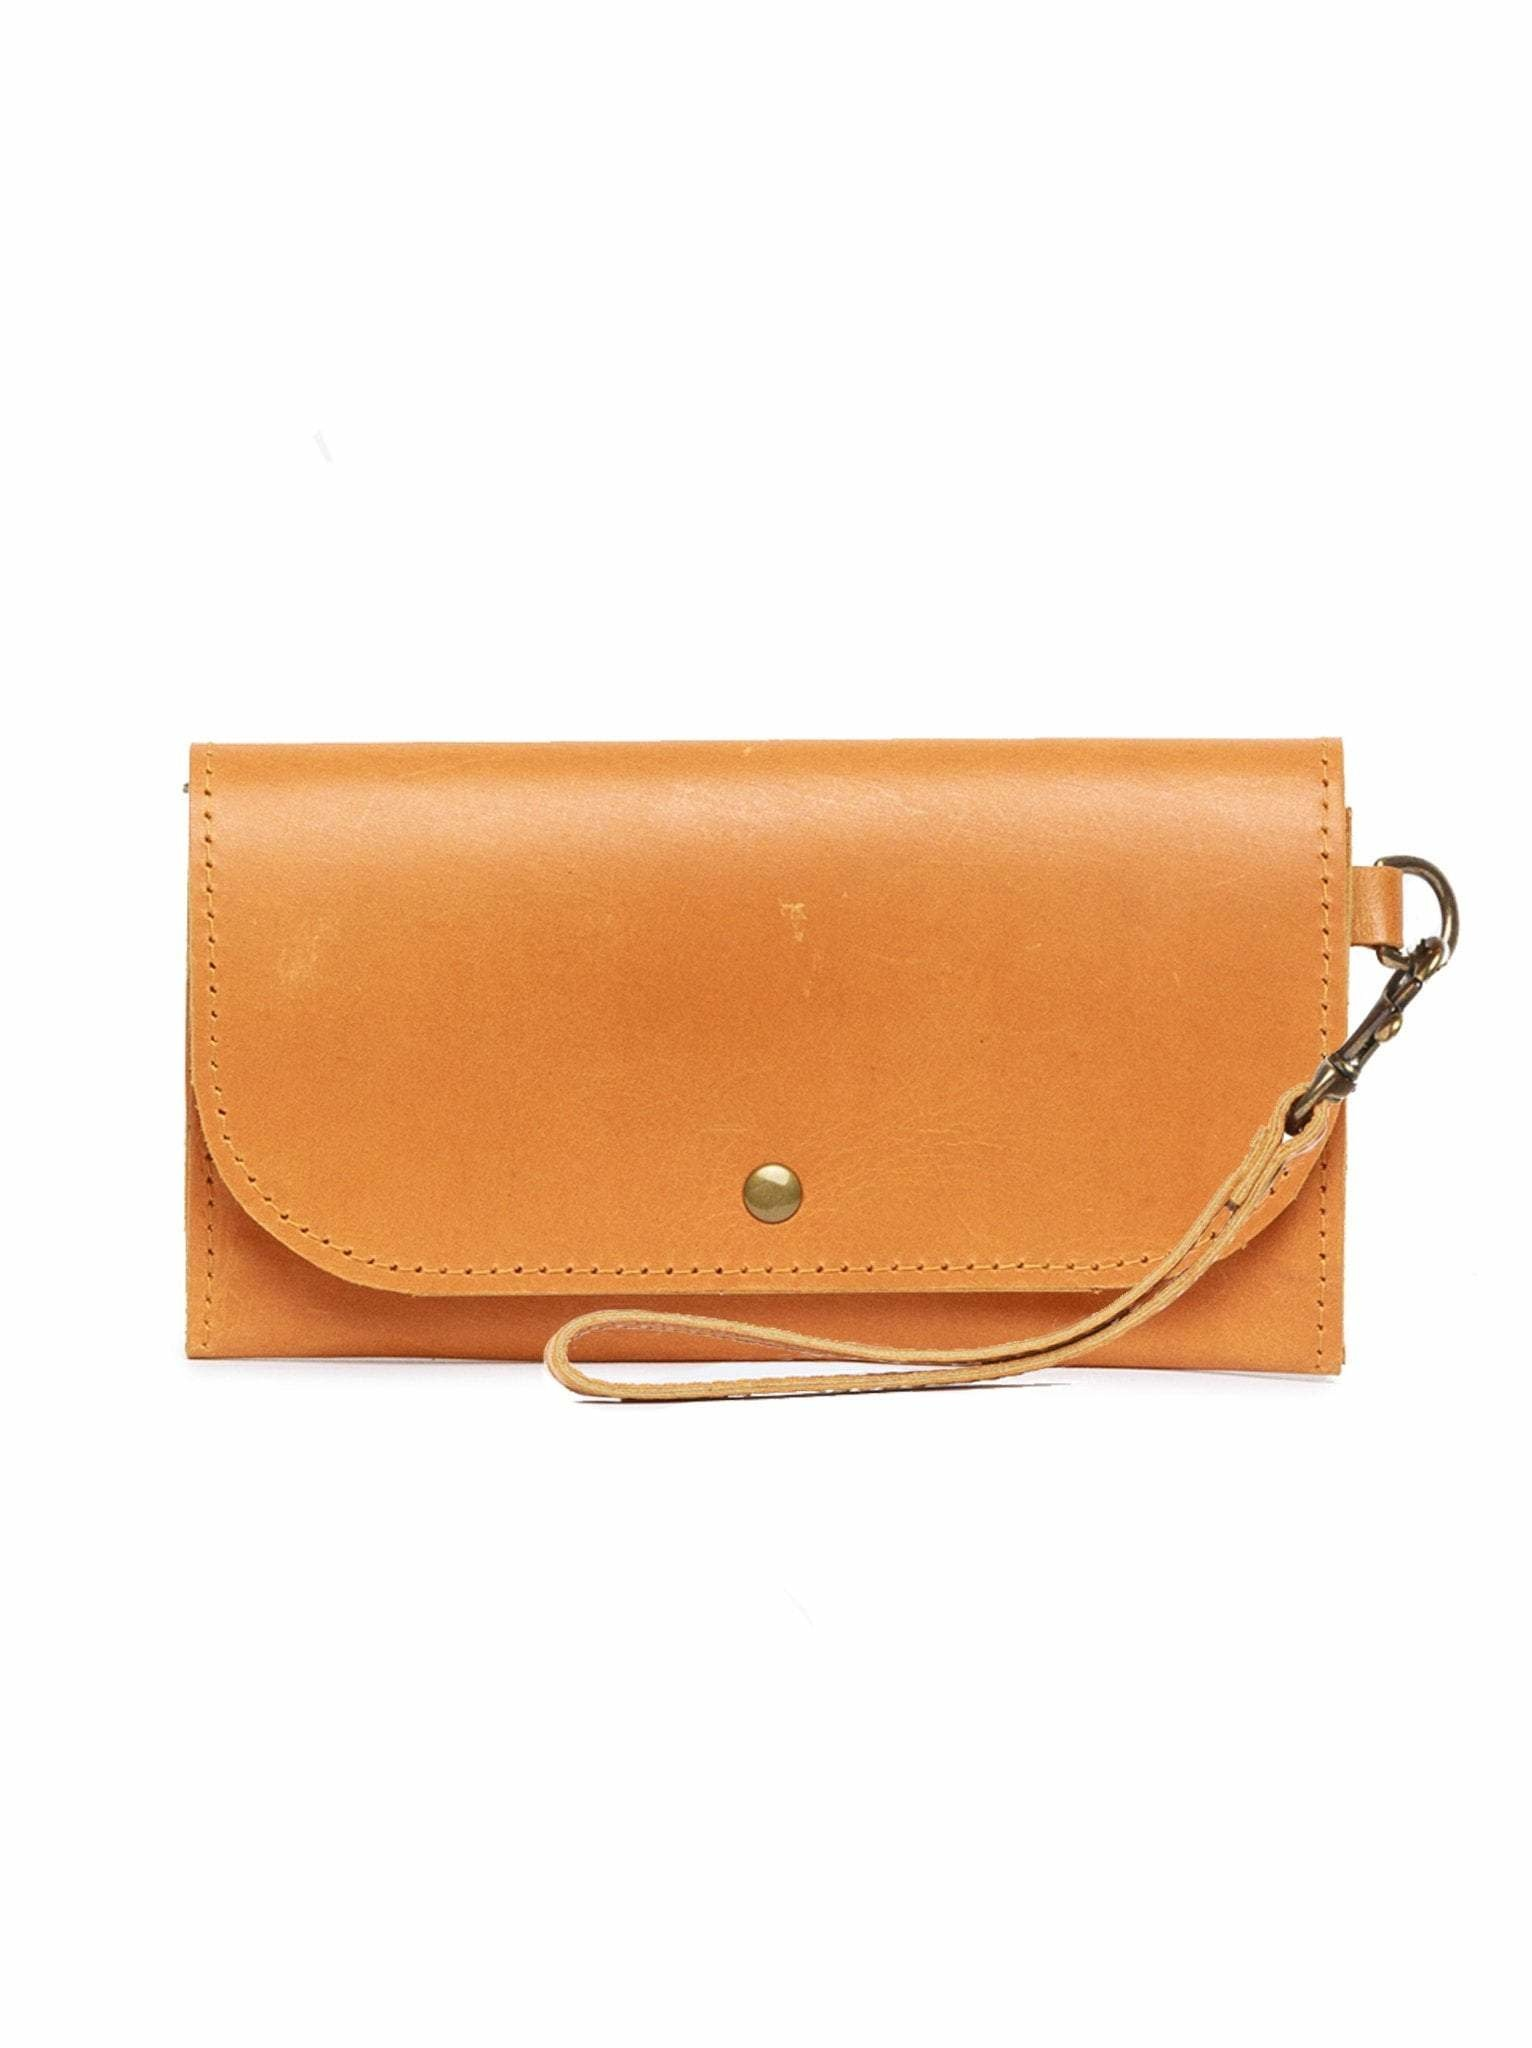 Punchy's Mare Phone Wallet in Cognac